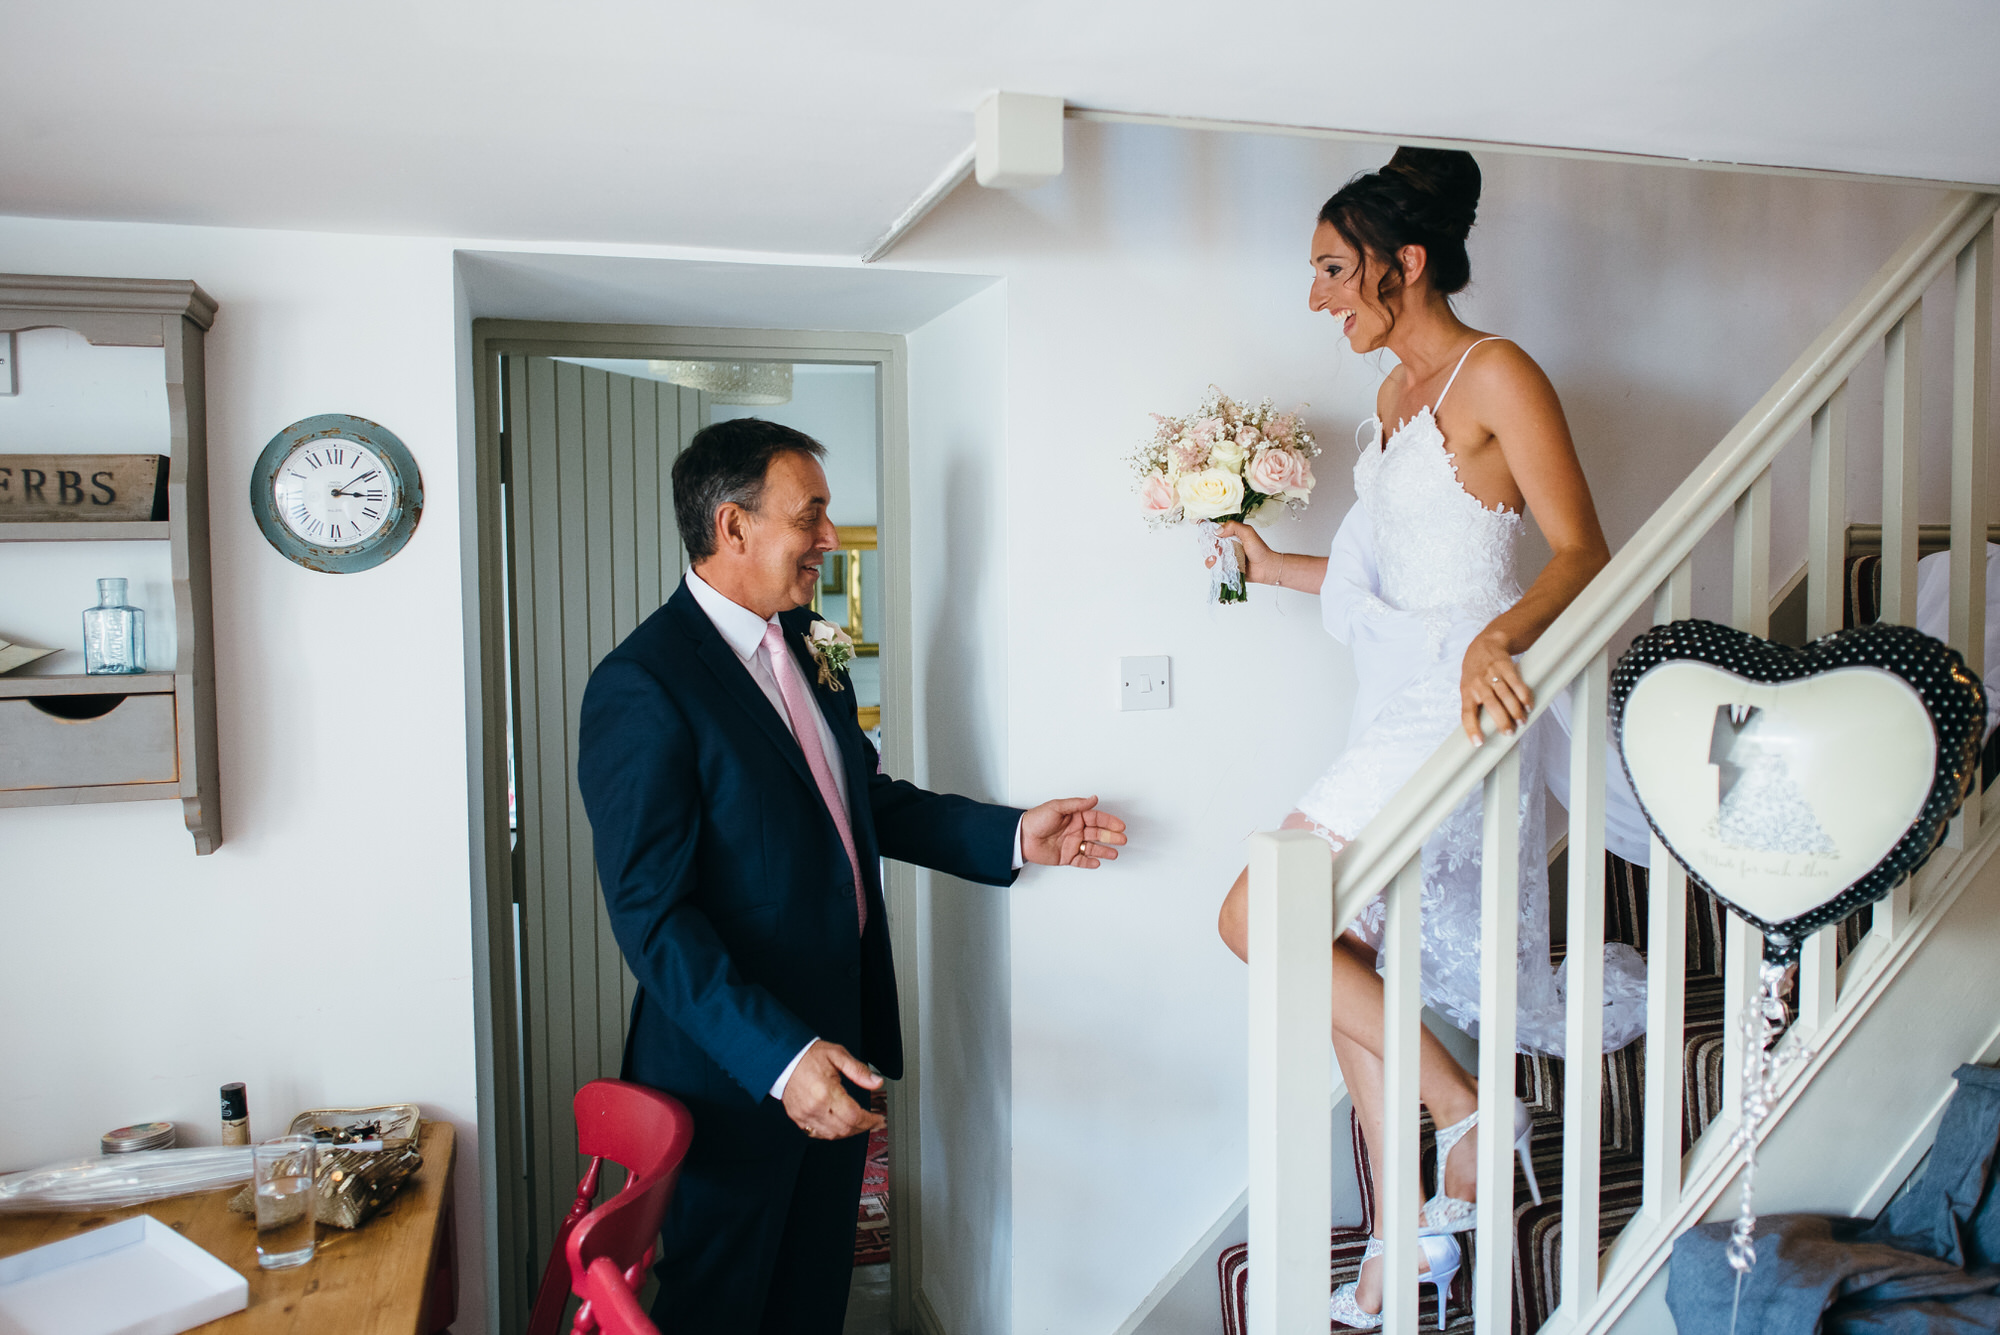 Hafod farm wedding photography022